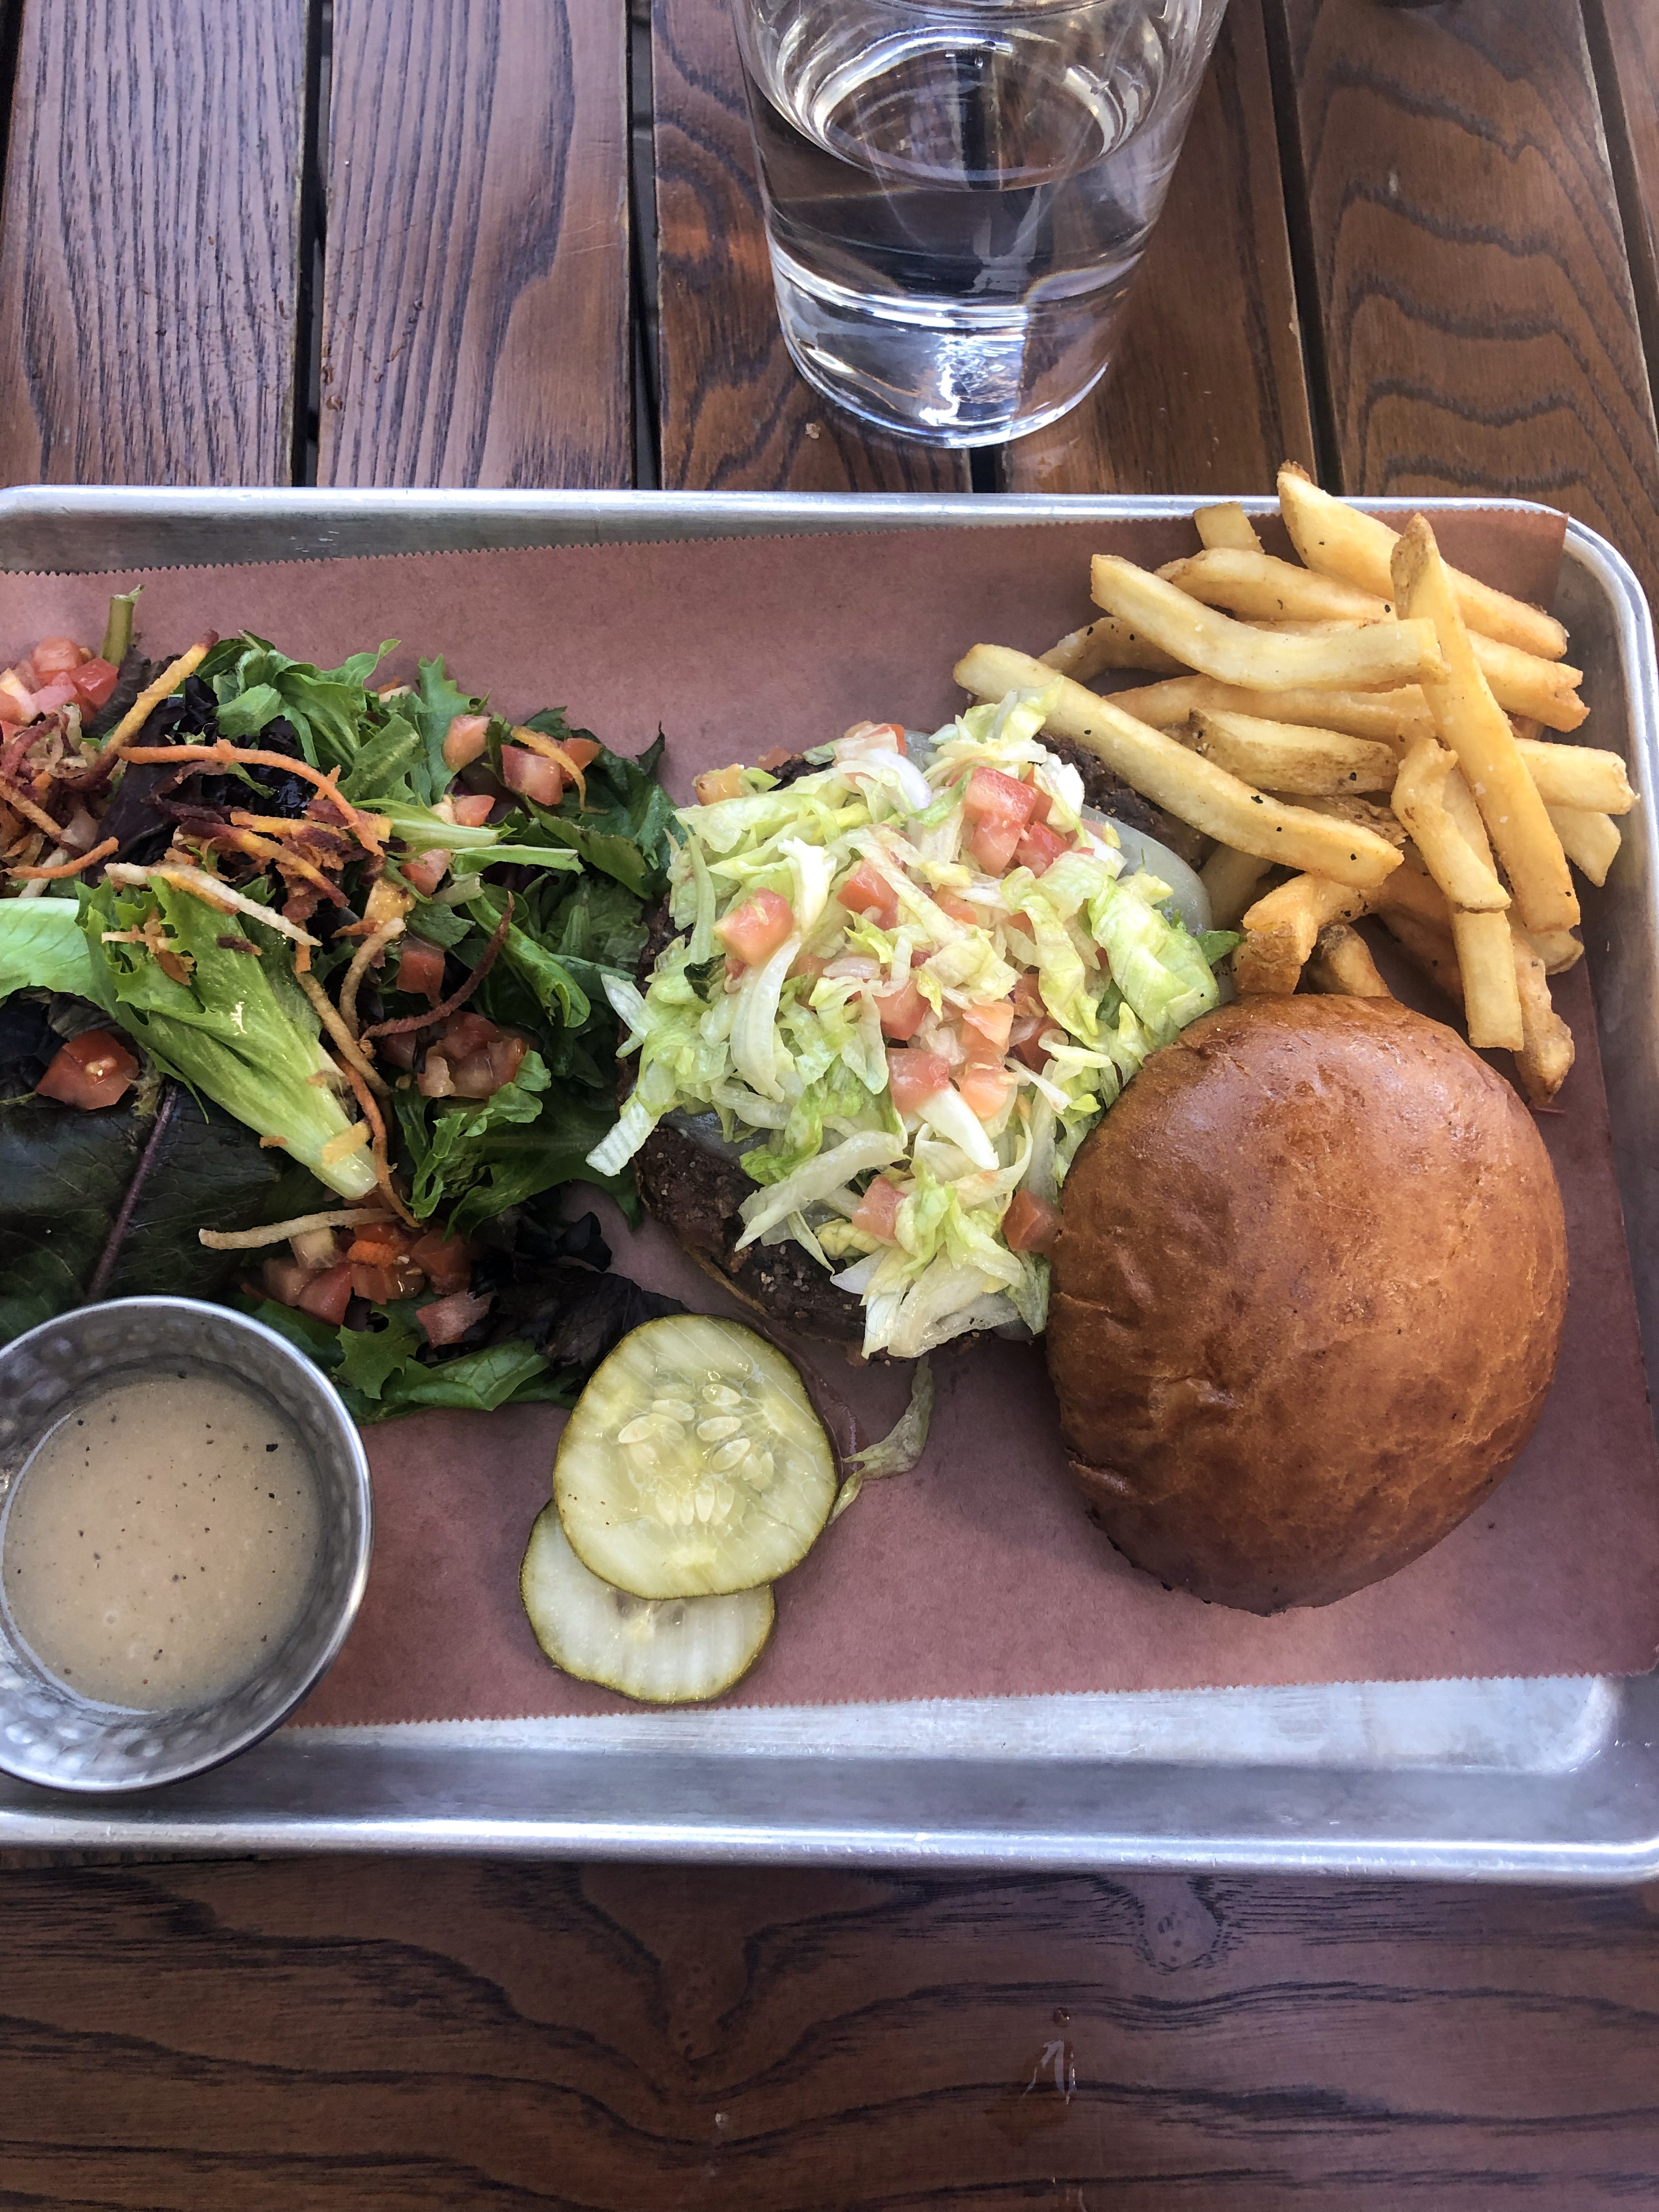 Beyond Veggie Burger with french fries and side salad in downtown Crested Butte.